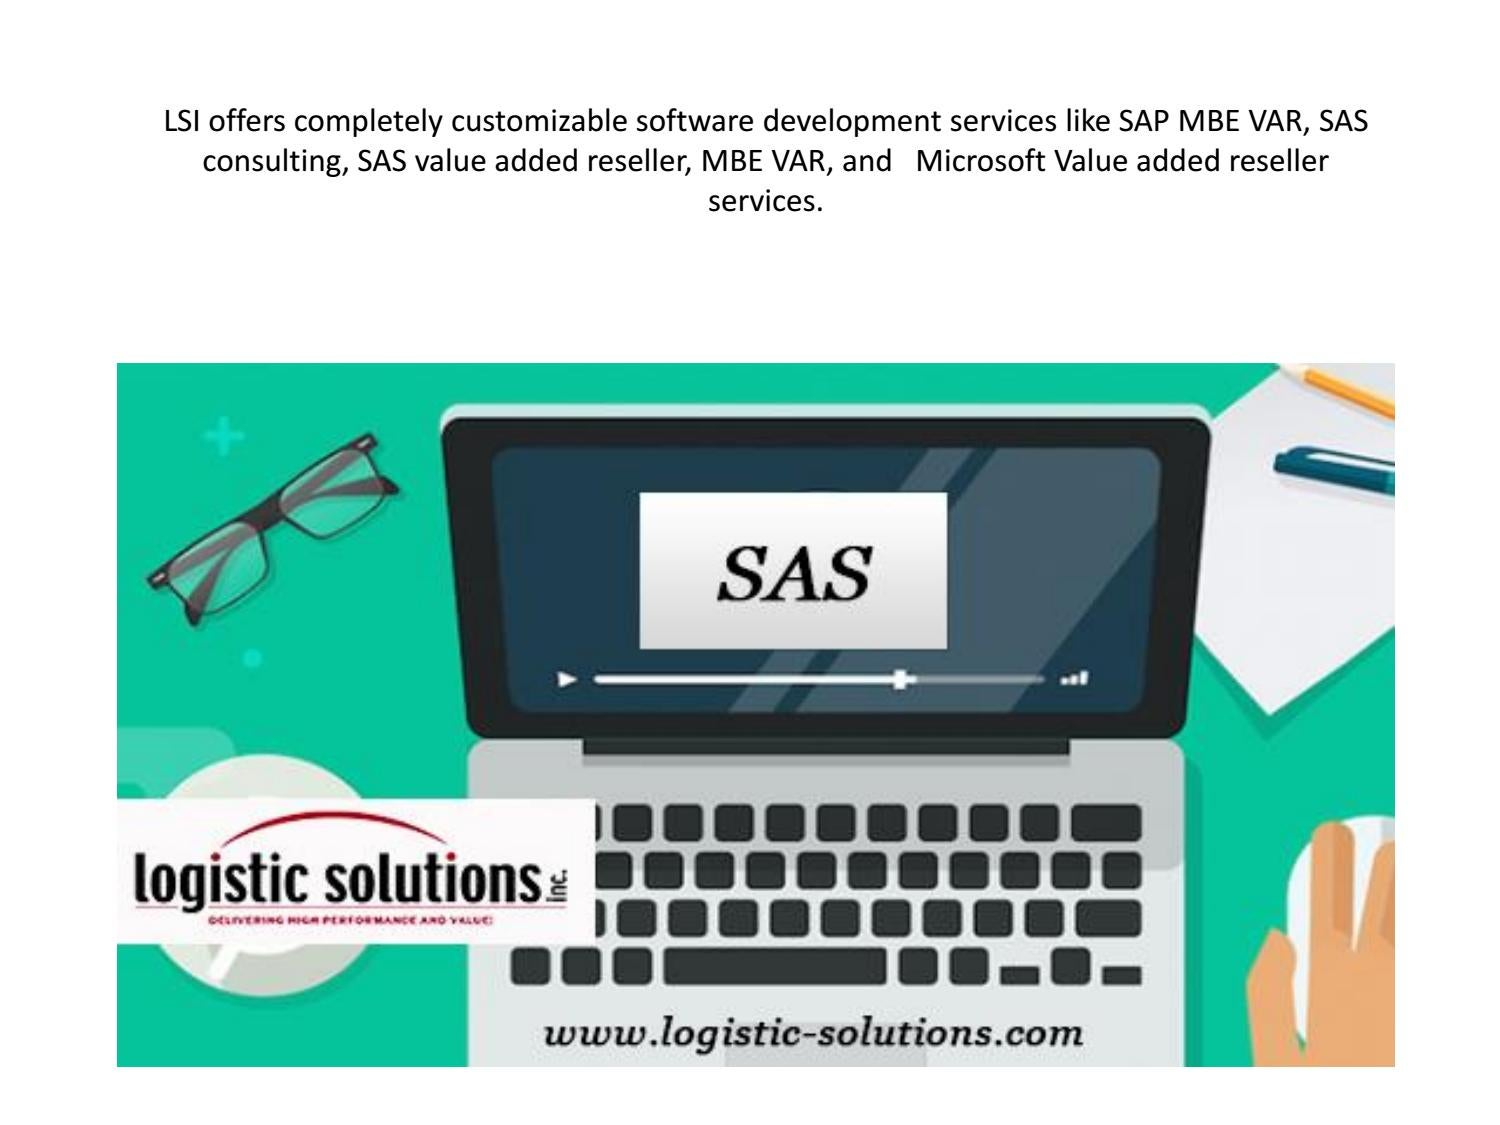 Lsi offers completely customizable software development